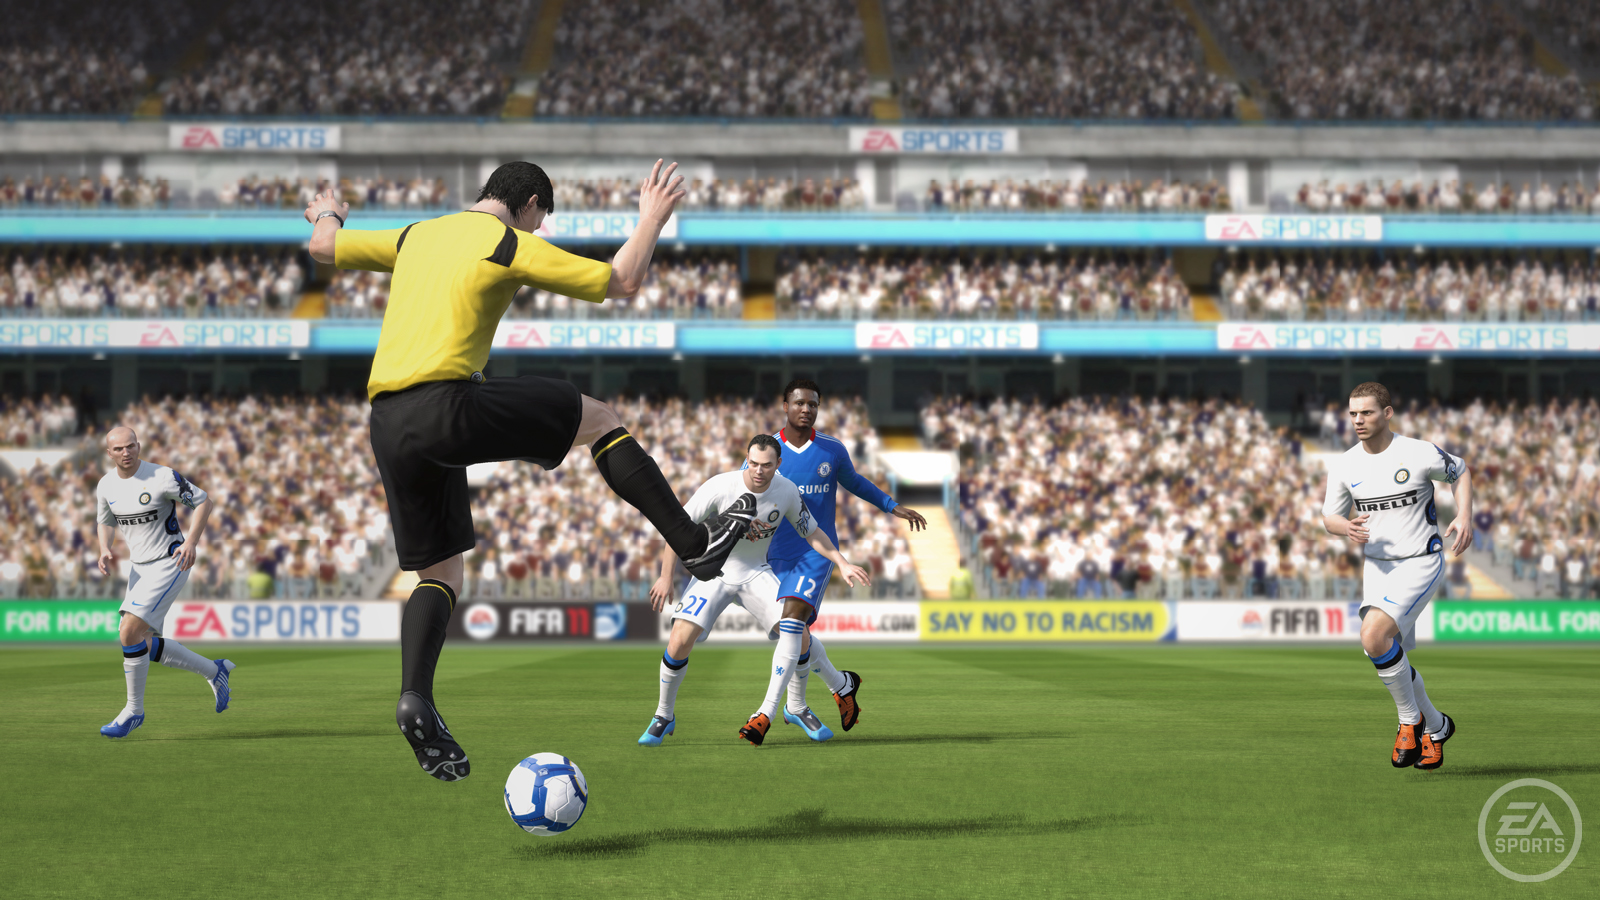 Download Fifa 11 Game For PC Full Version For Free